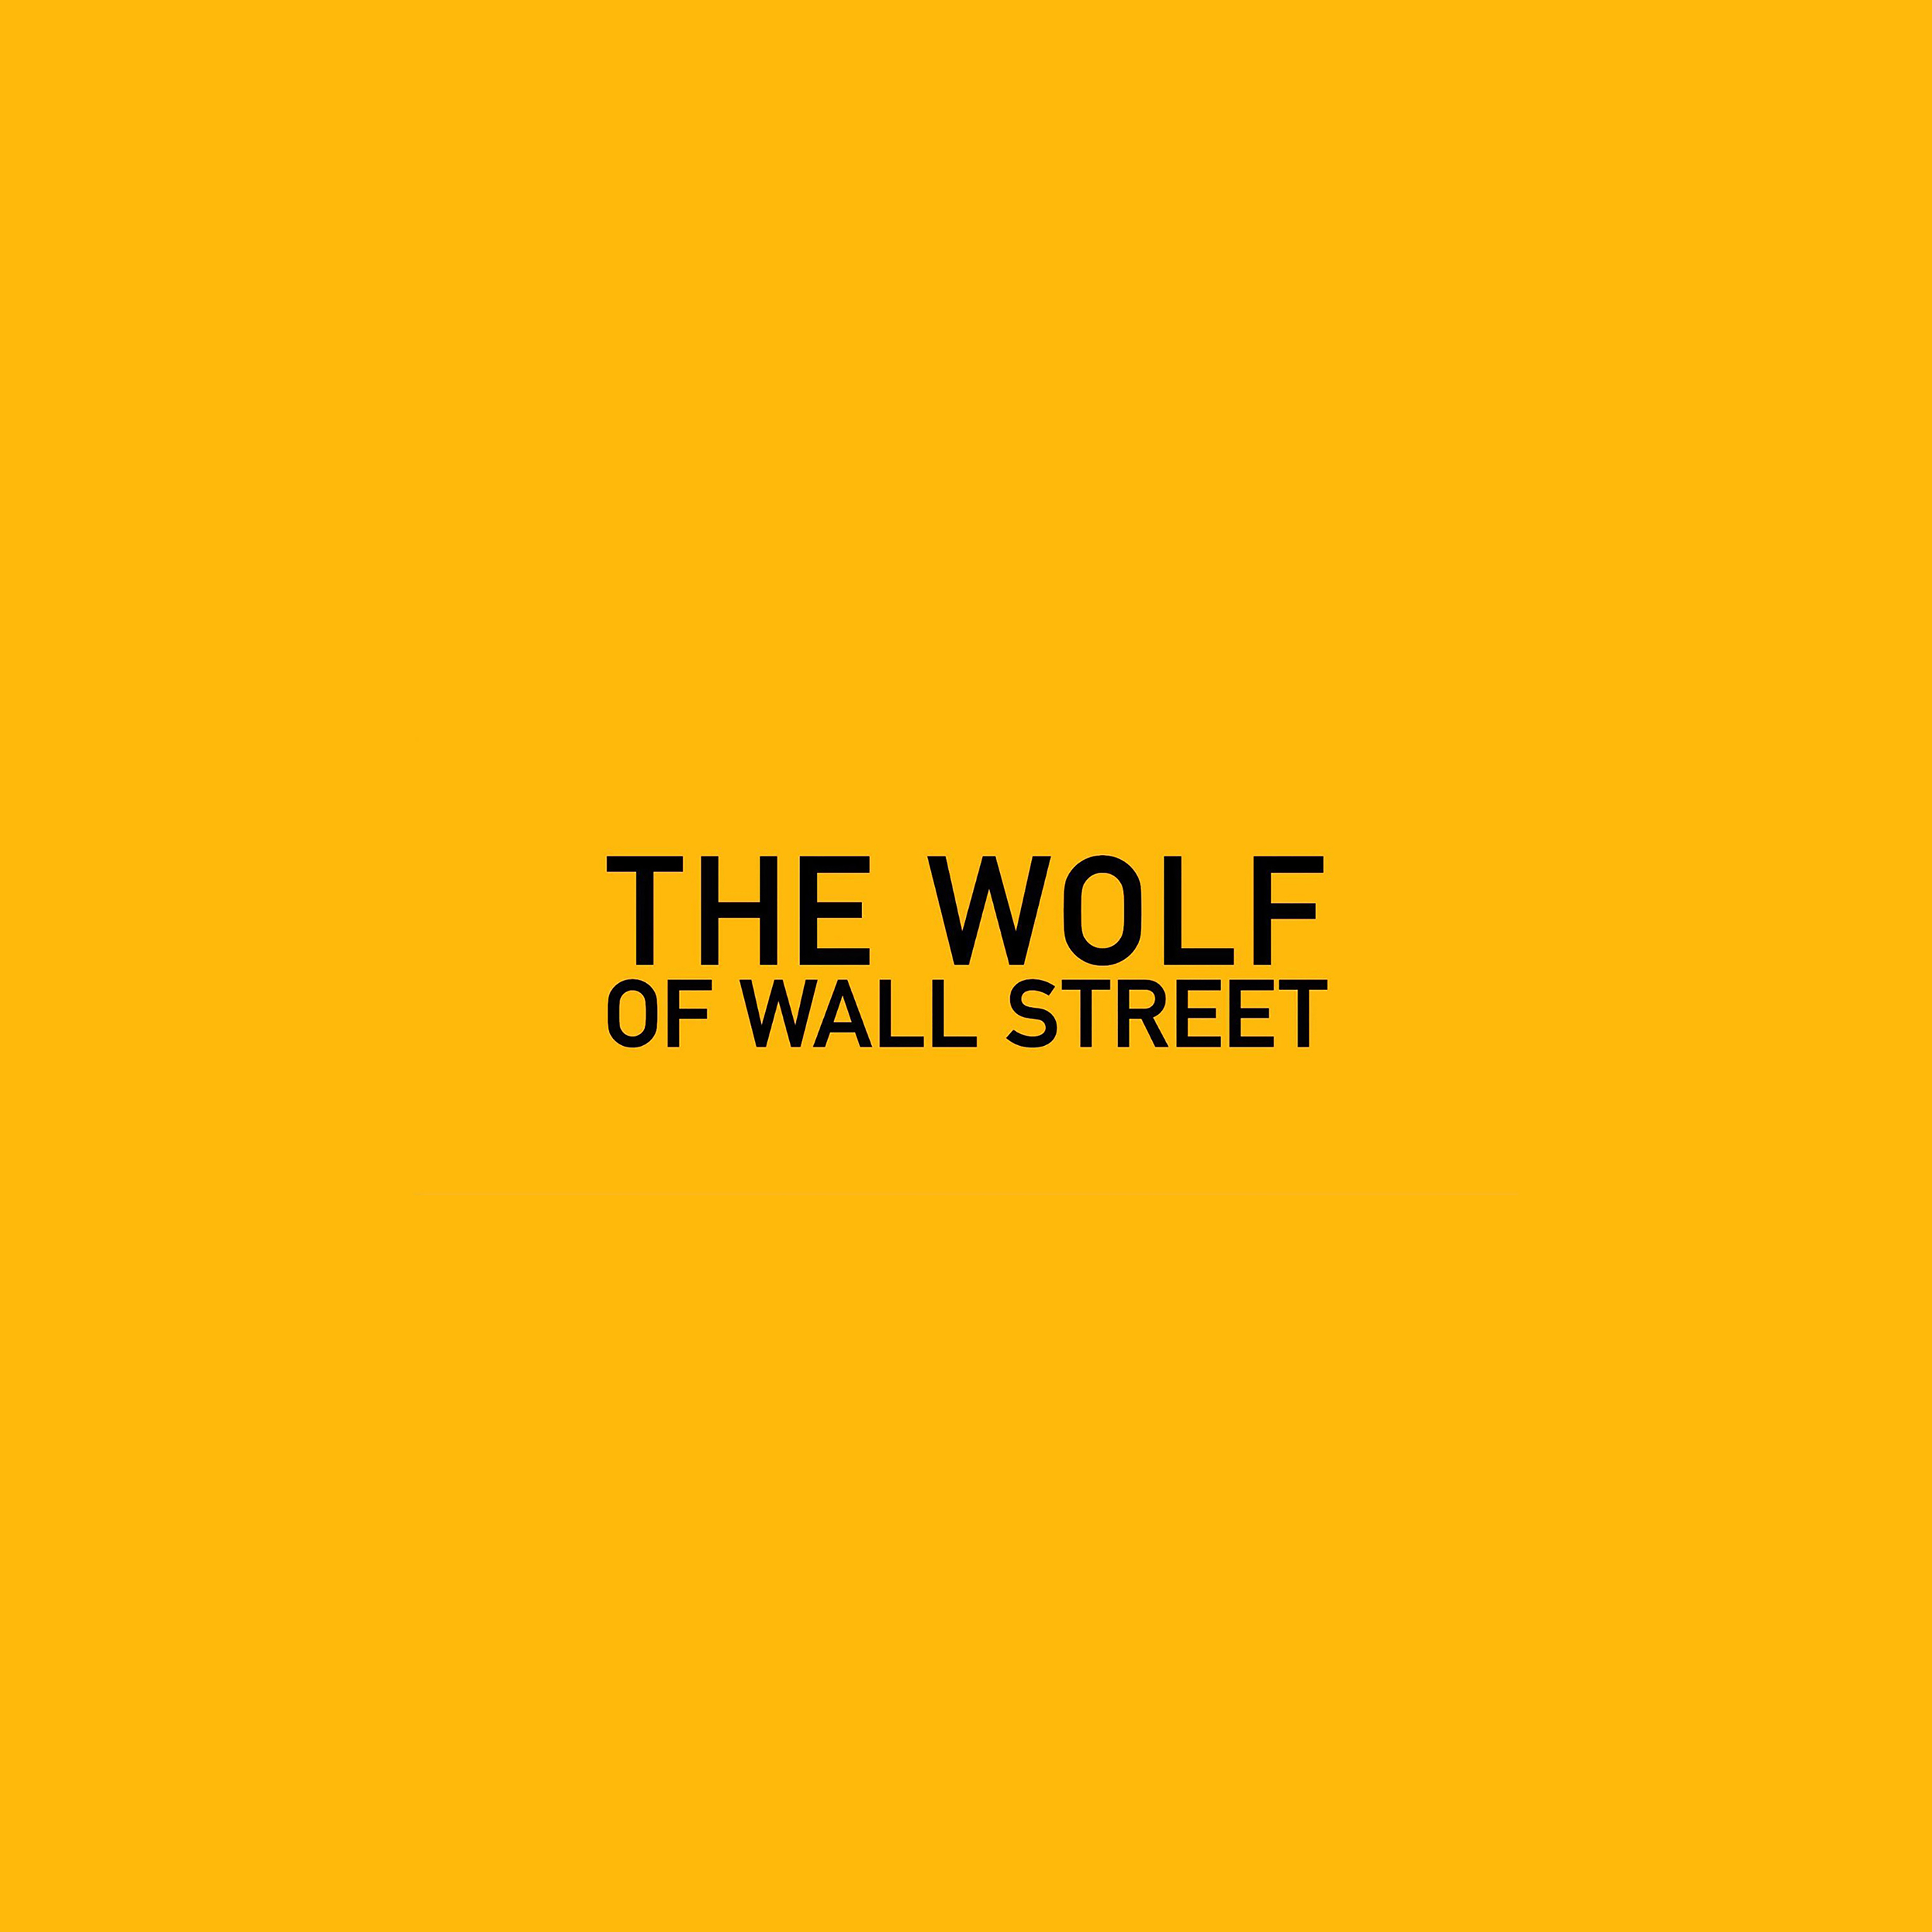 Ab26 Wallpaper The Wolf Of Wallstreet Yellow Film Logo Papers Co